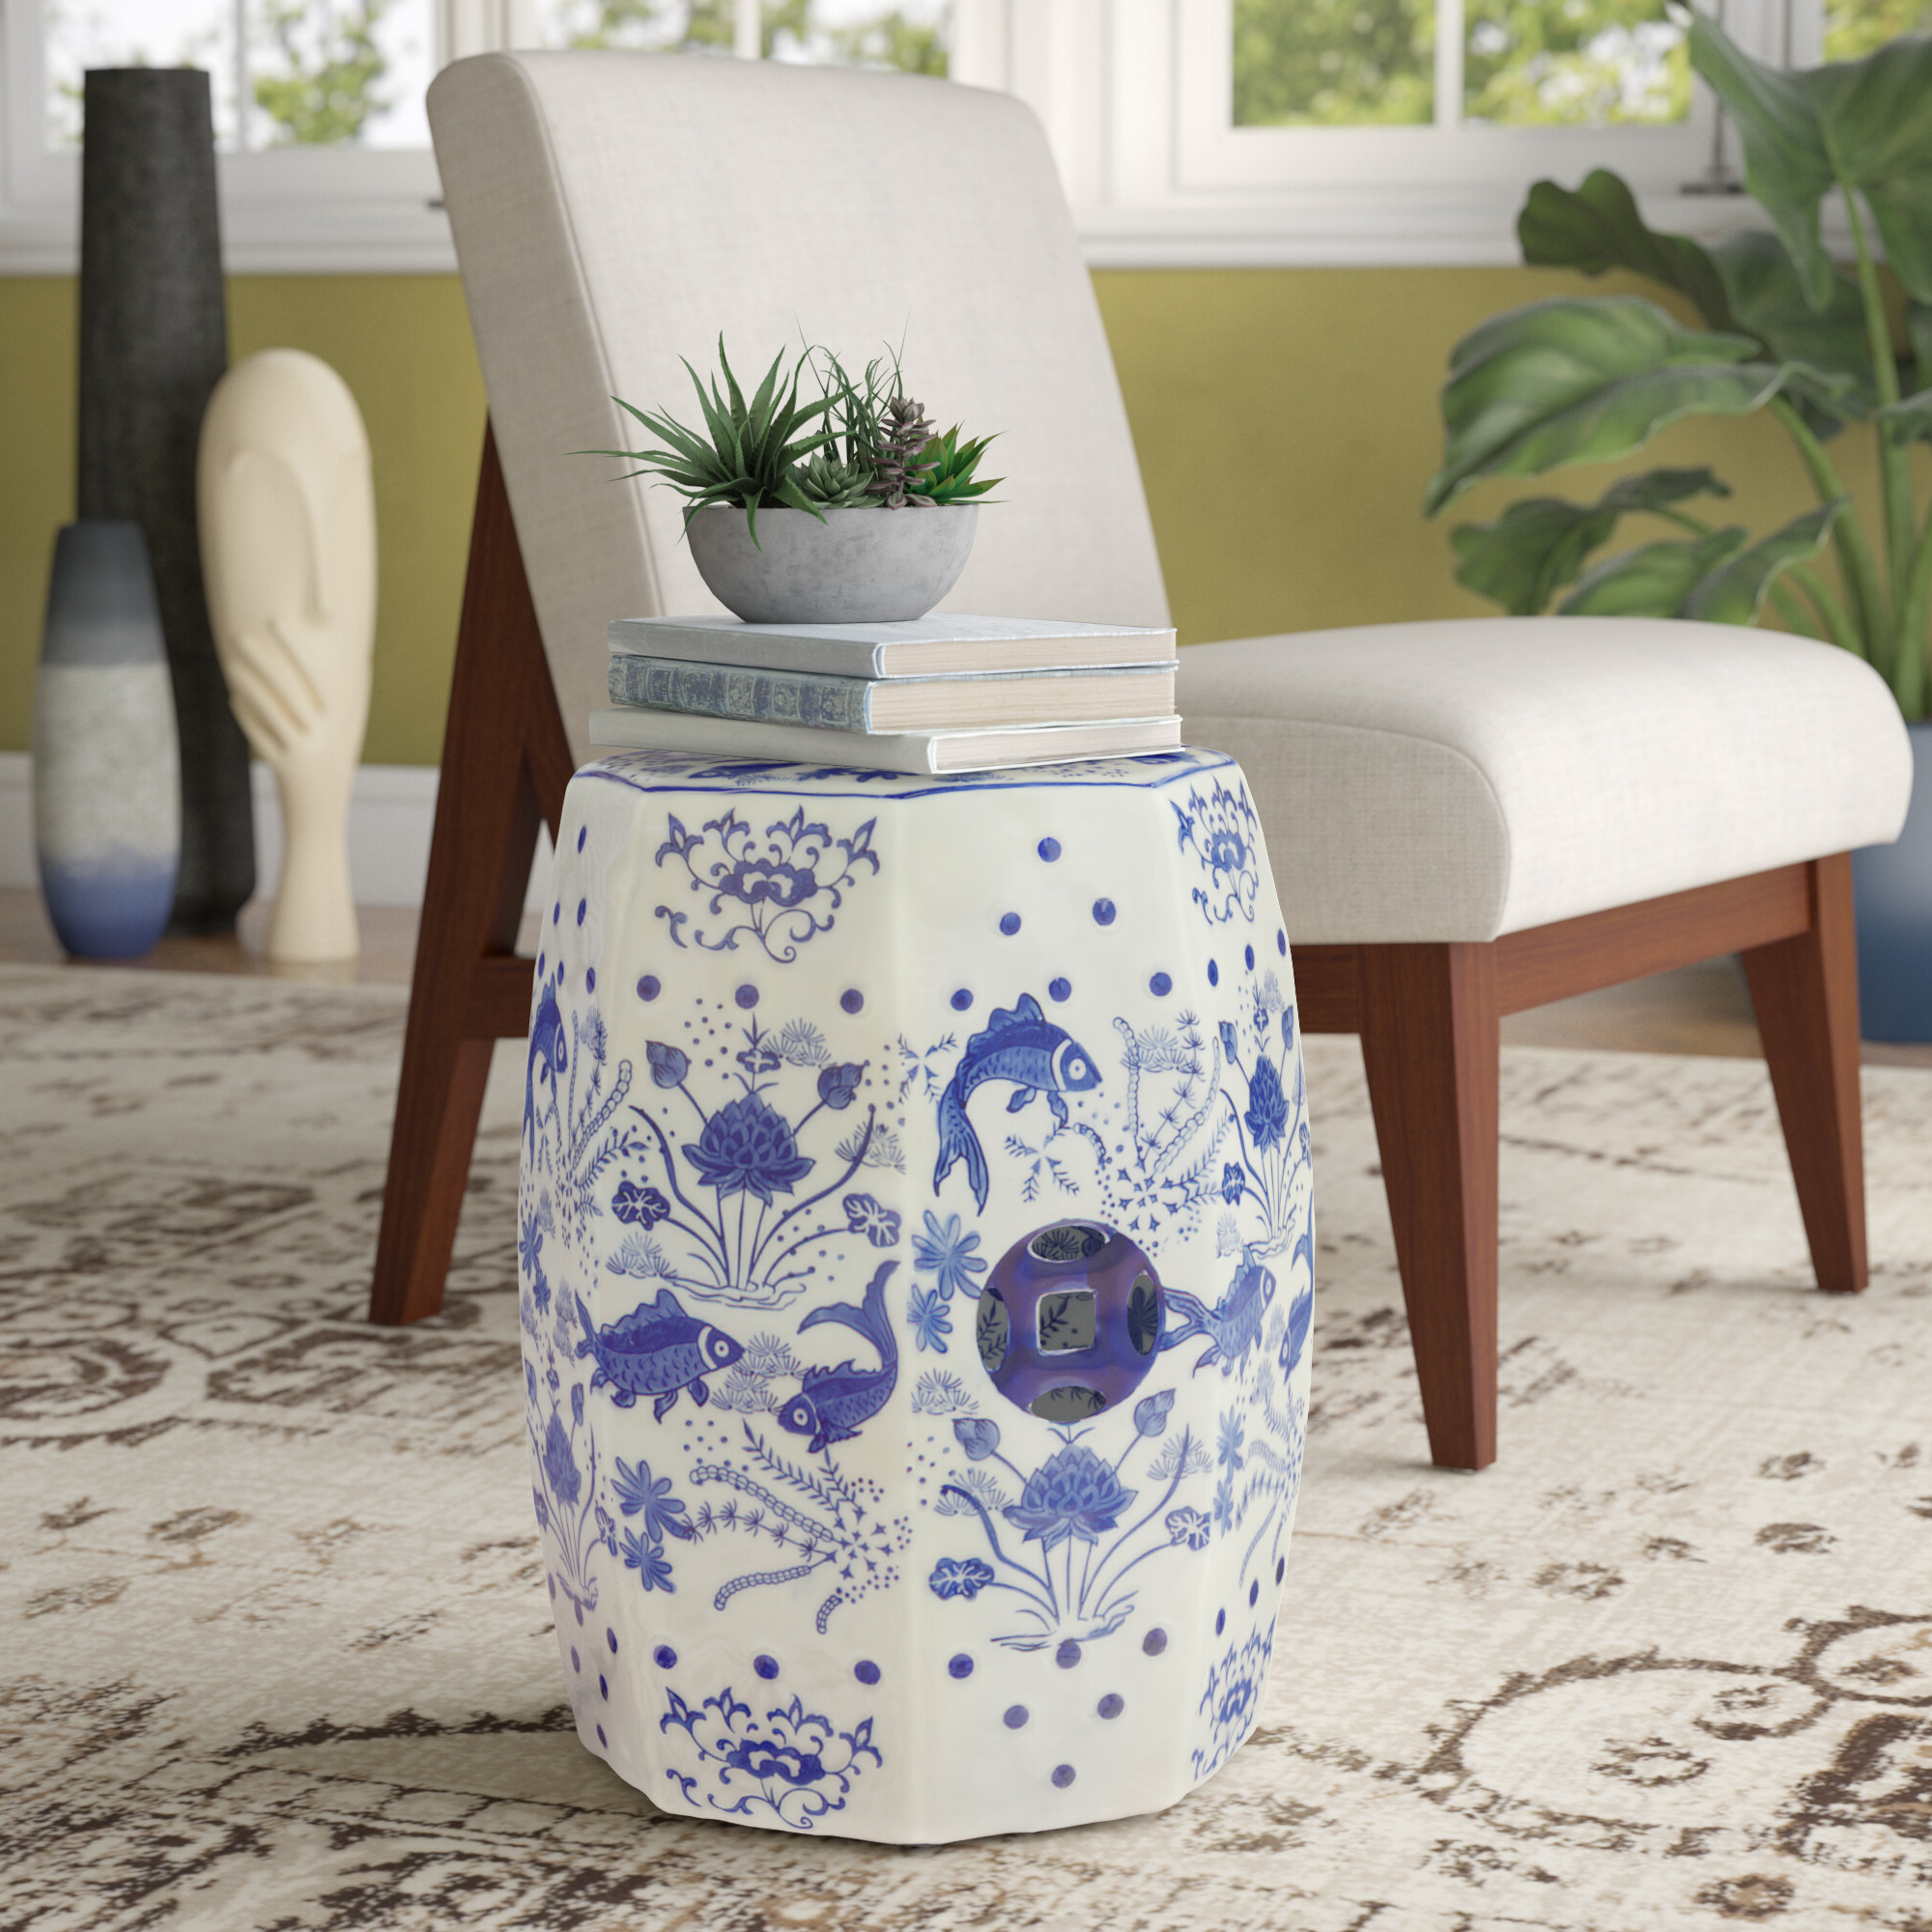 2020 Bilmont Ceramic Garden Stool Intended For Kelston Ceramic Garden Stools (View 15 of 30)